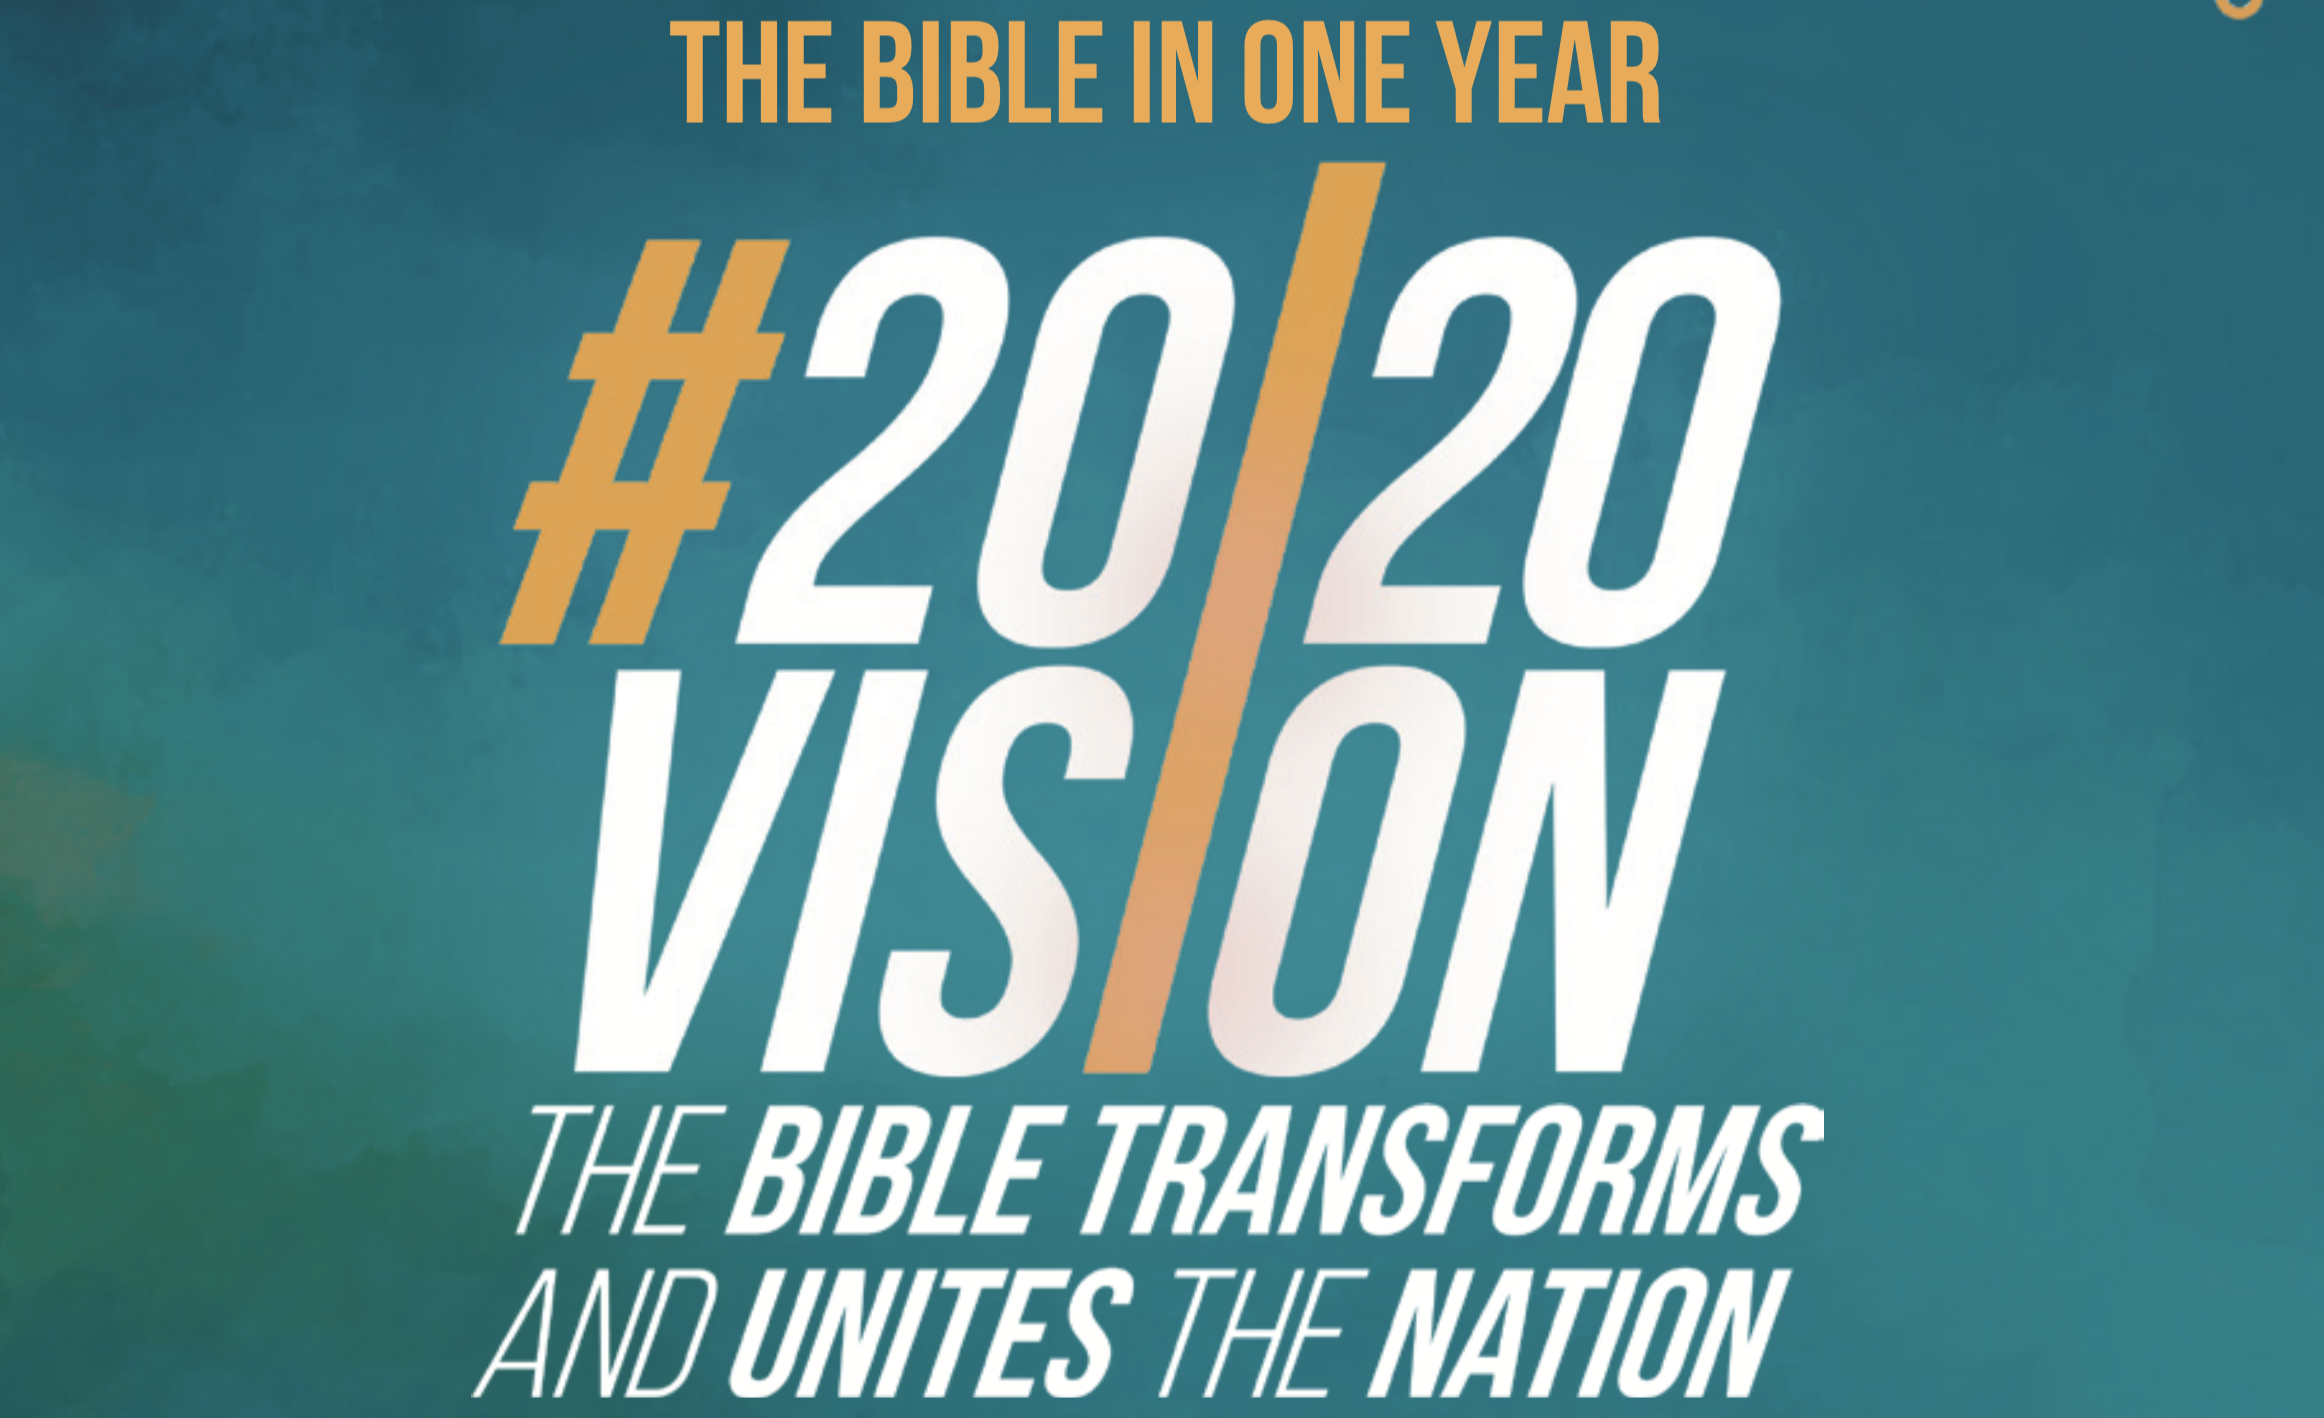 Bible In One Year 2020